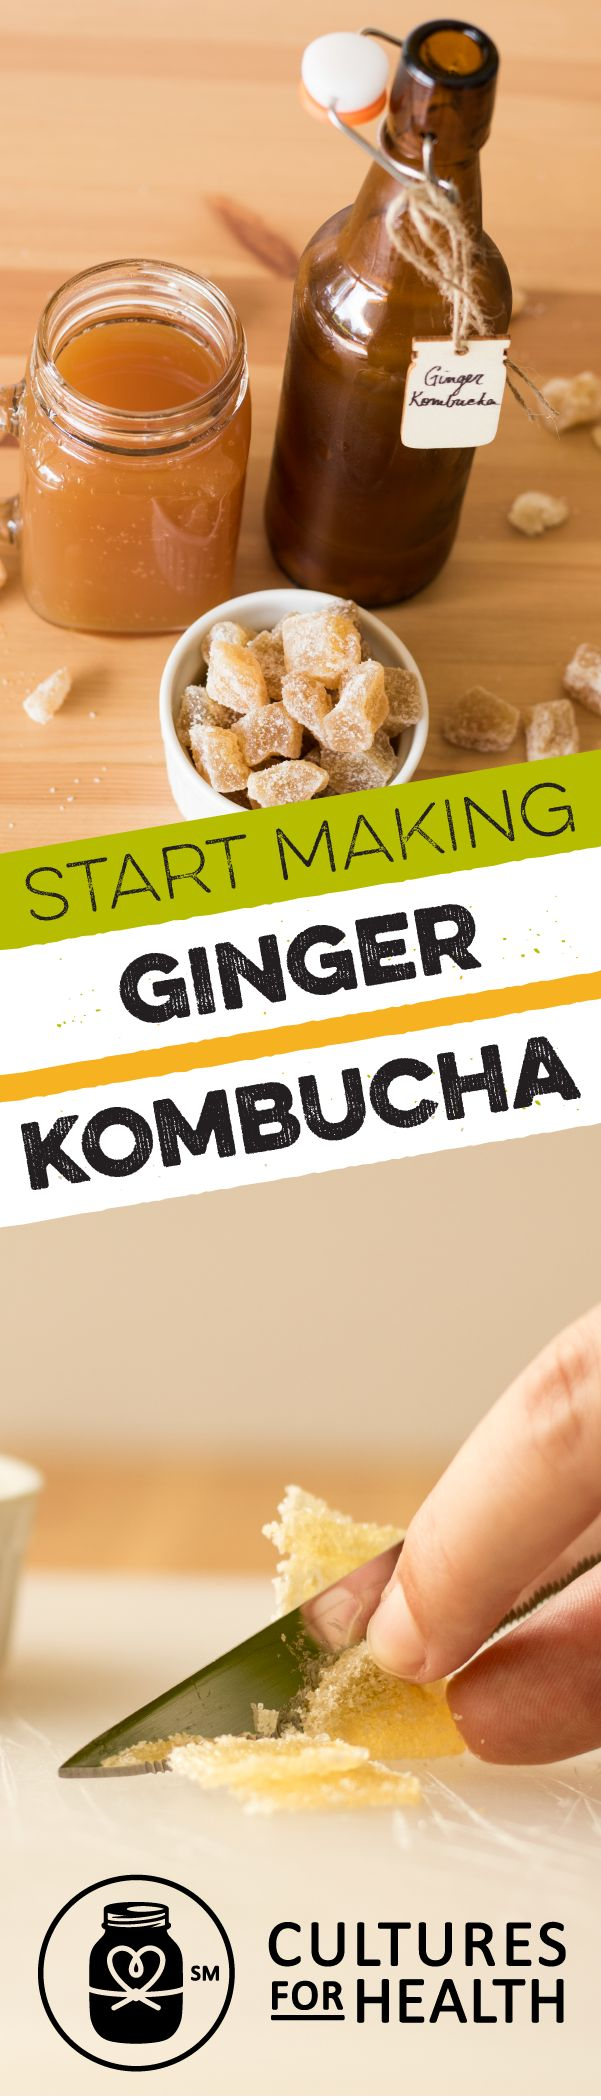 Learn to make homemade ginger kombucha, just like the spicy and refreshing version you see in the store. With this all-in-one kit, it couldn't be easier to make this fermented treat.